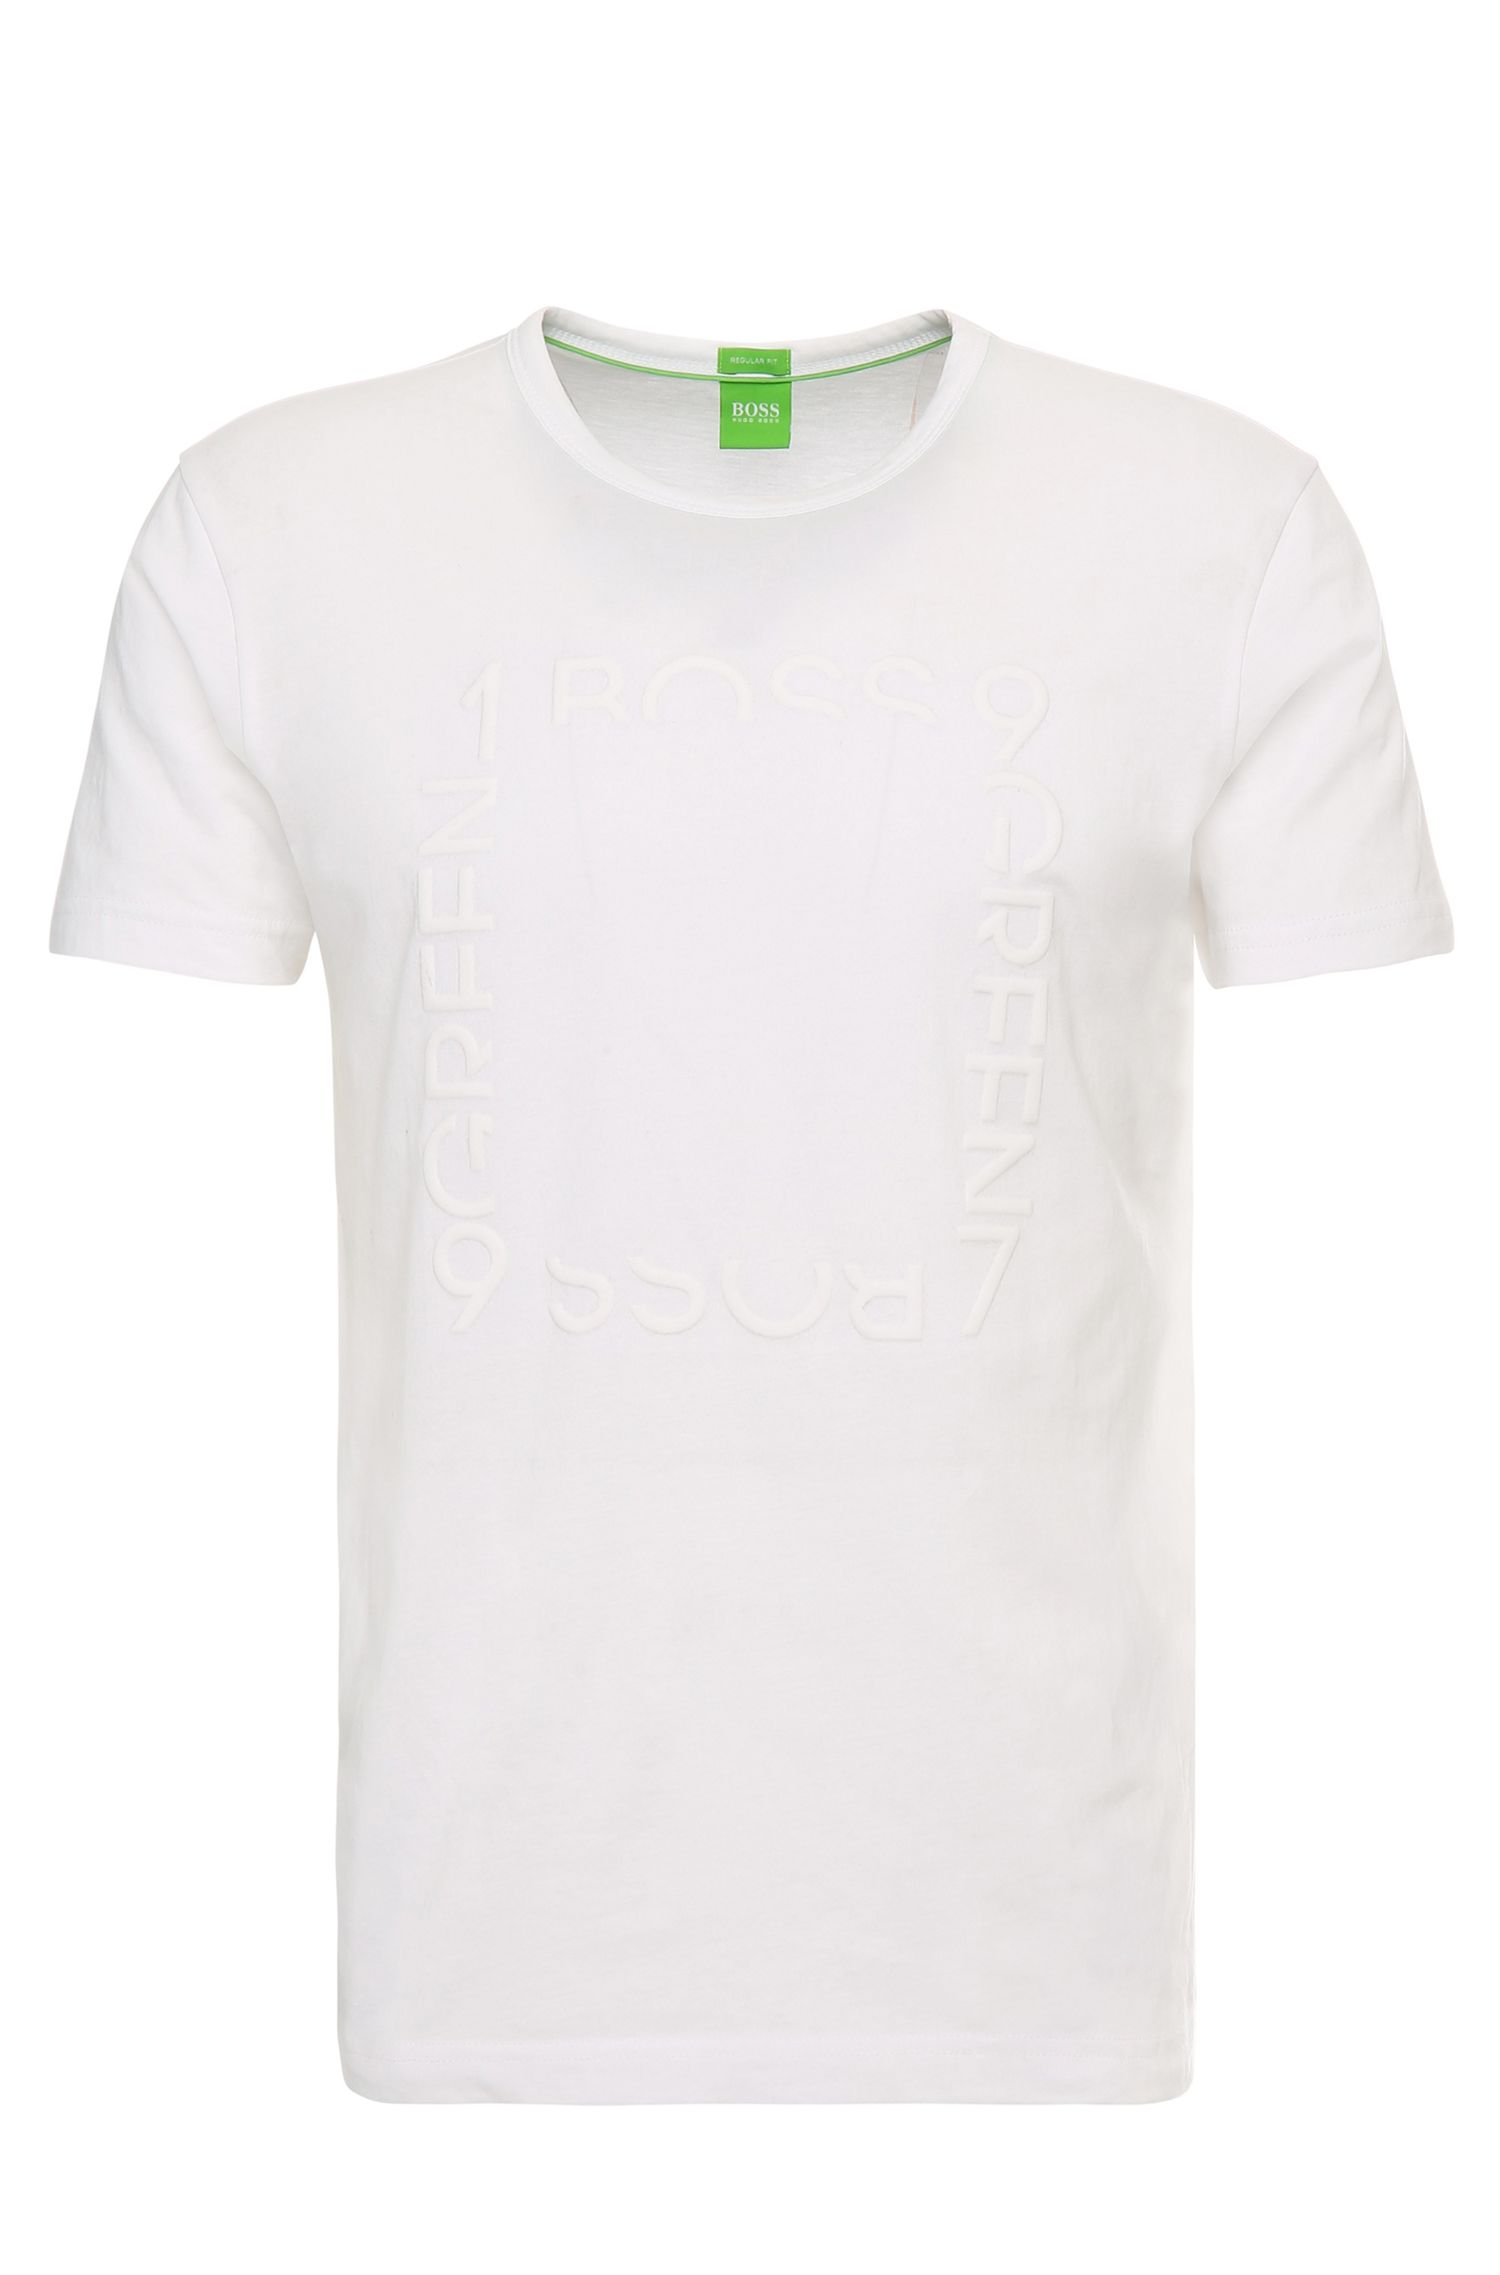 T-shirt regular fit in cotone con scritte del logo: 'Tee 3'